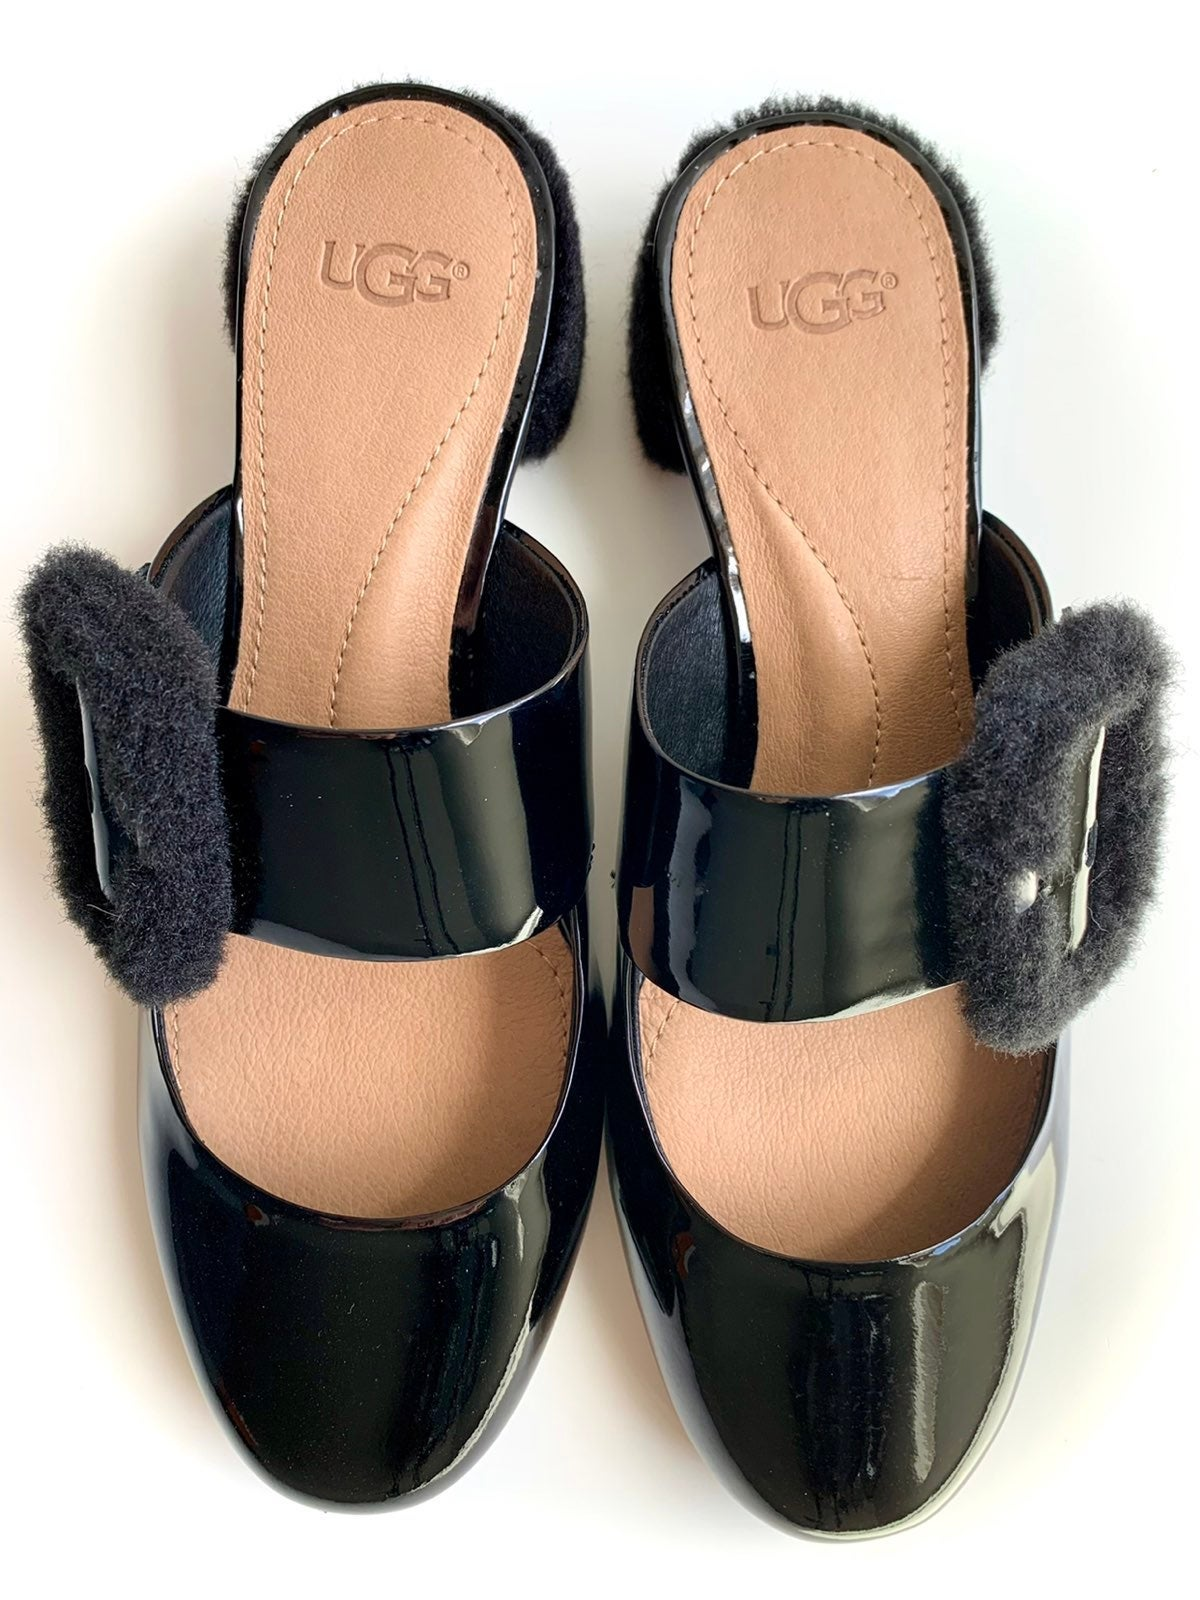 ✨UGG Patent Leather Mary Jane Mules 7